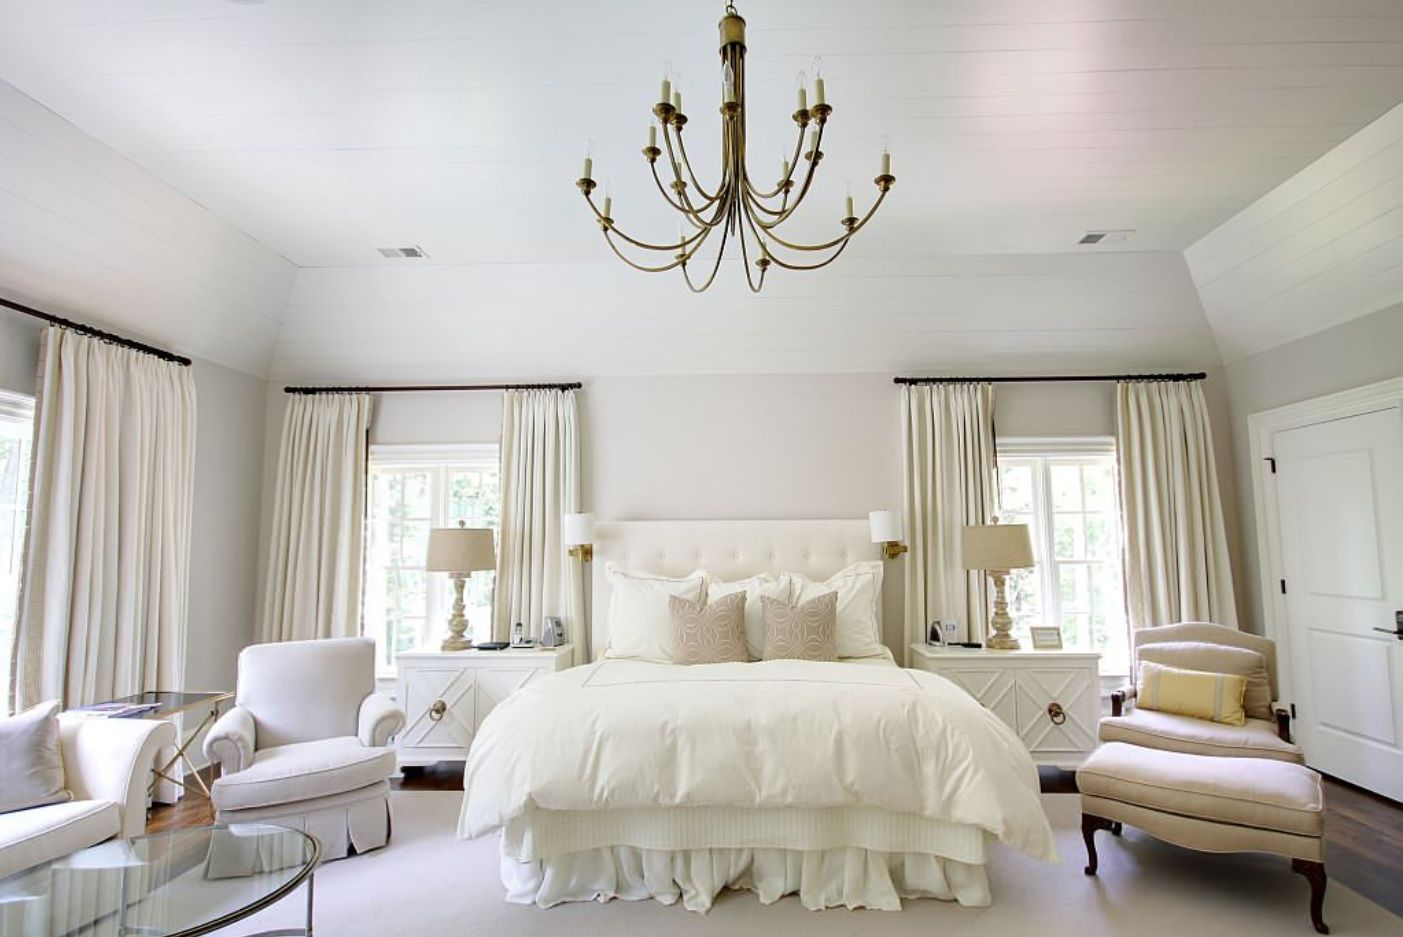 White Bedroom Furniture Set Ideas & Photos. Nice Classic chandelier in the king size room